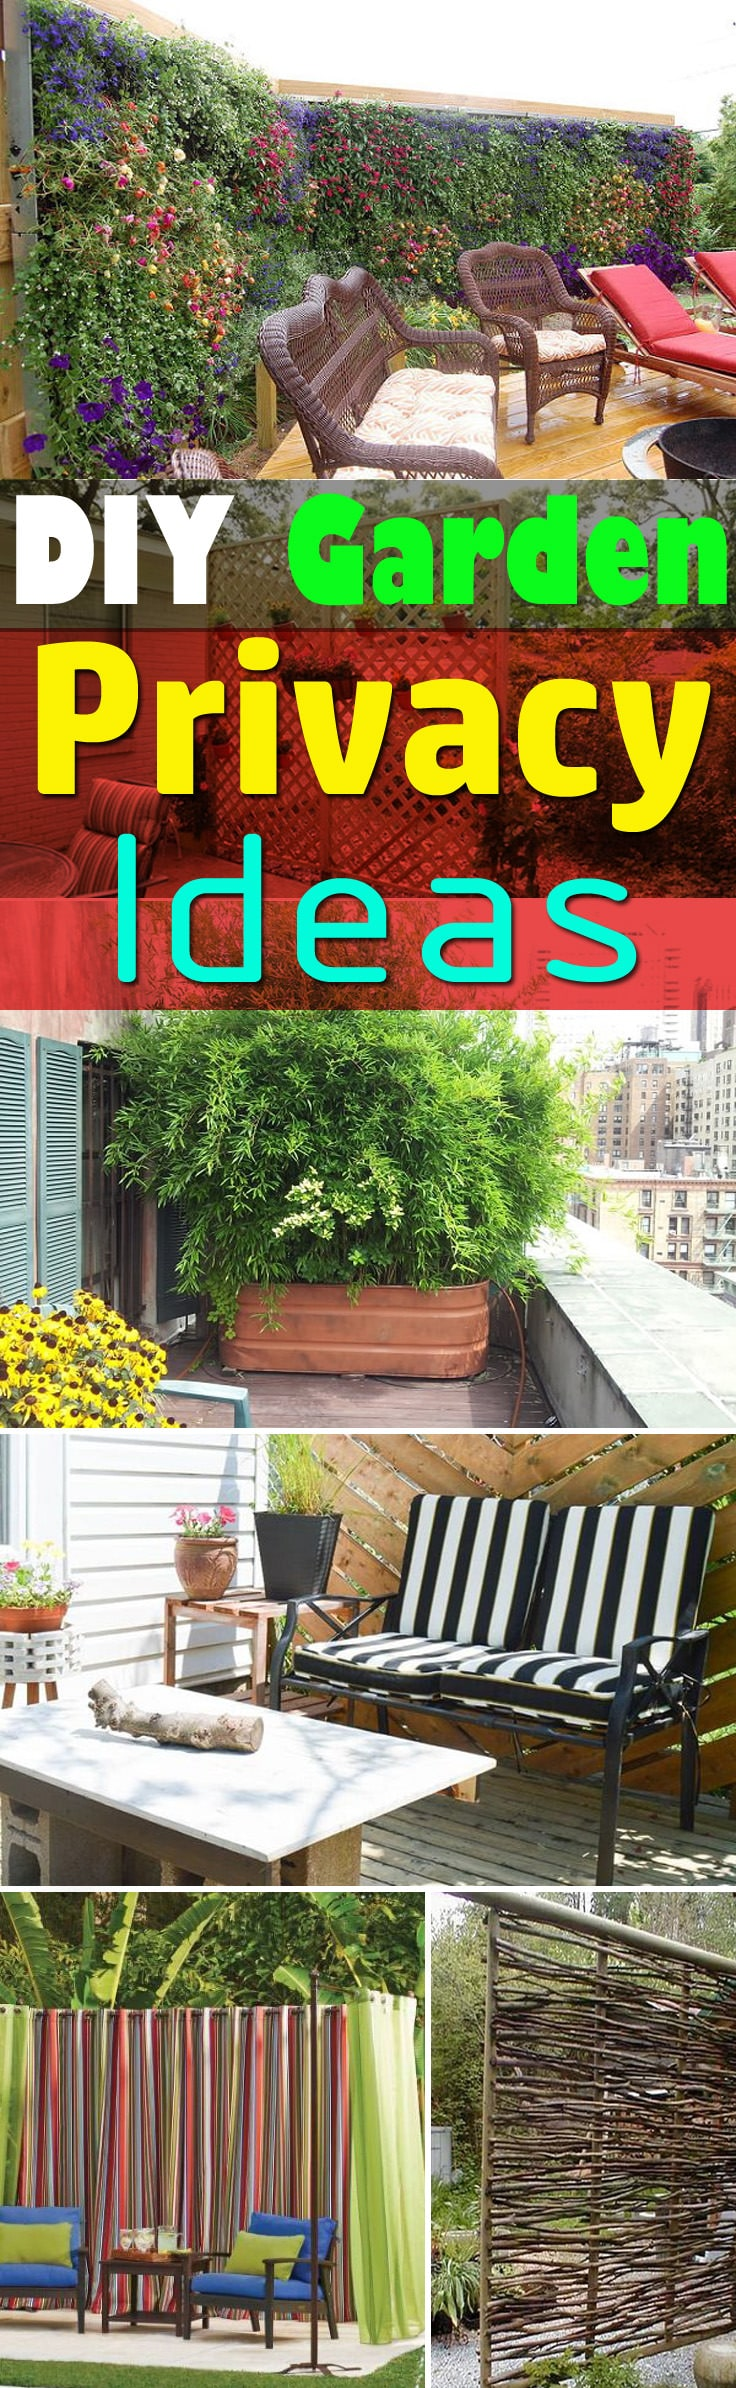 If you need privacy in your garden, the 26 DIY Garden Privacy Ideas here are worth looking at!